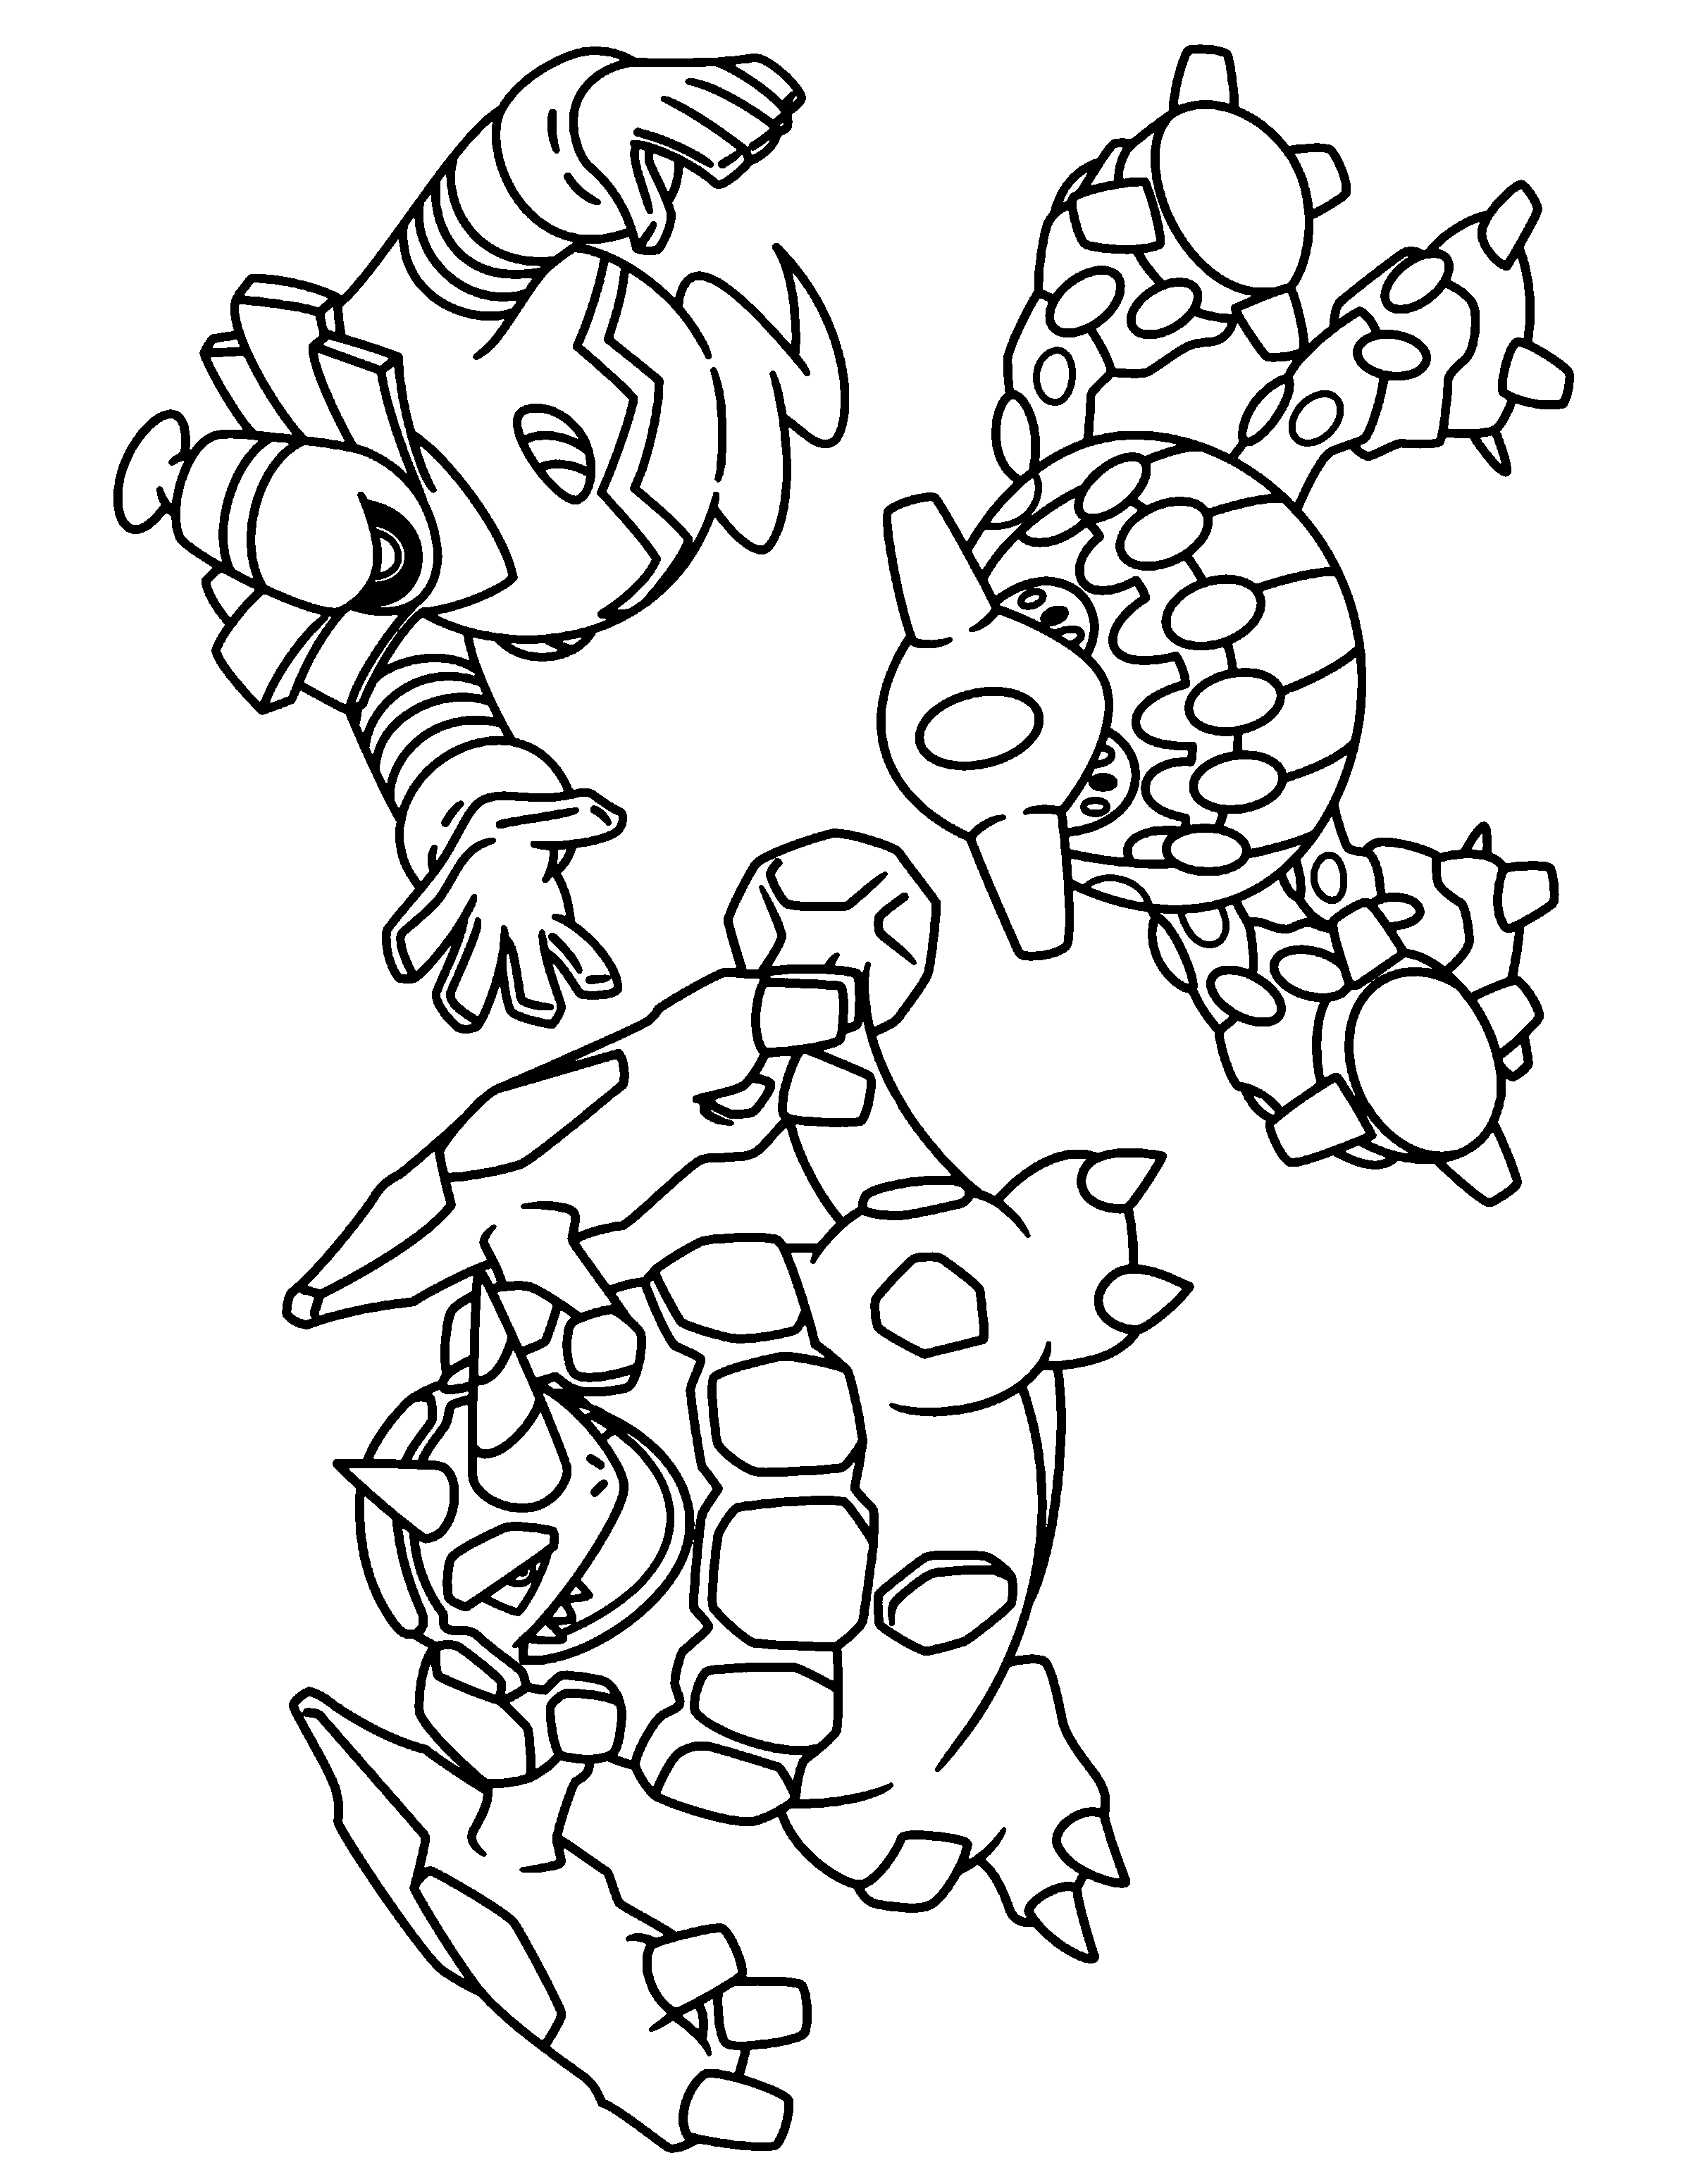 Coloring pages Tv series coloring pages Pokemon diamond pearl